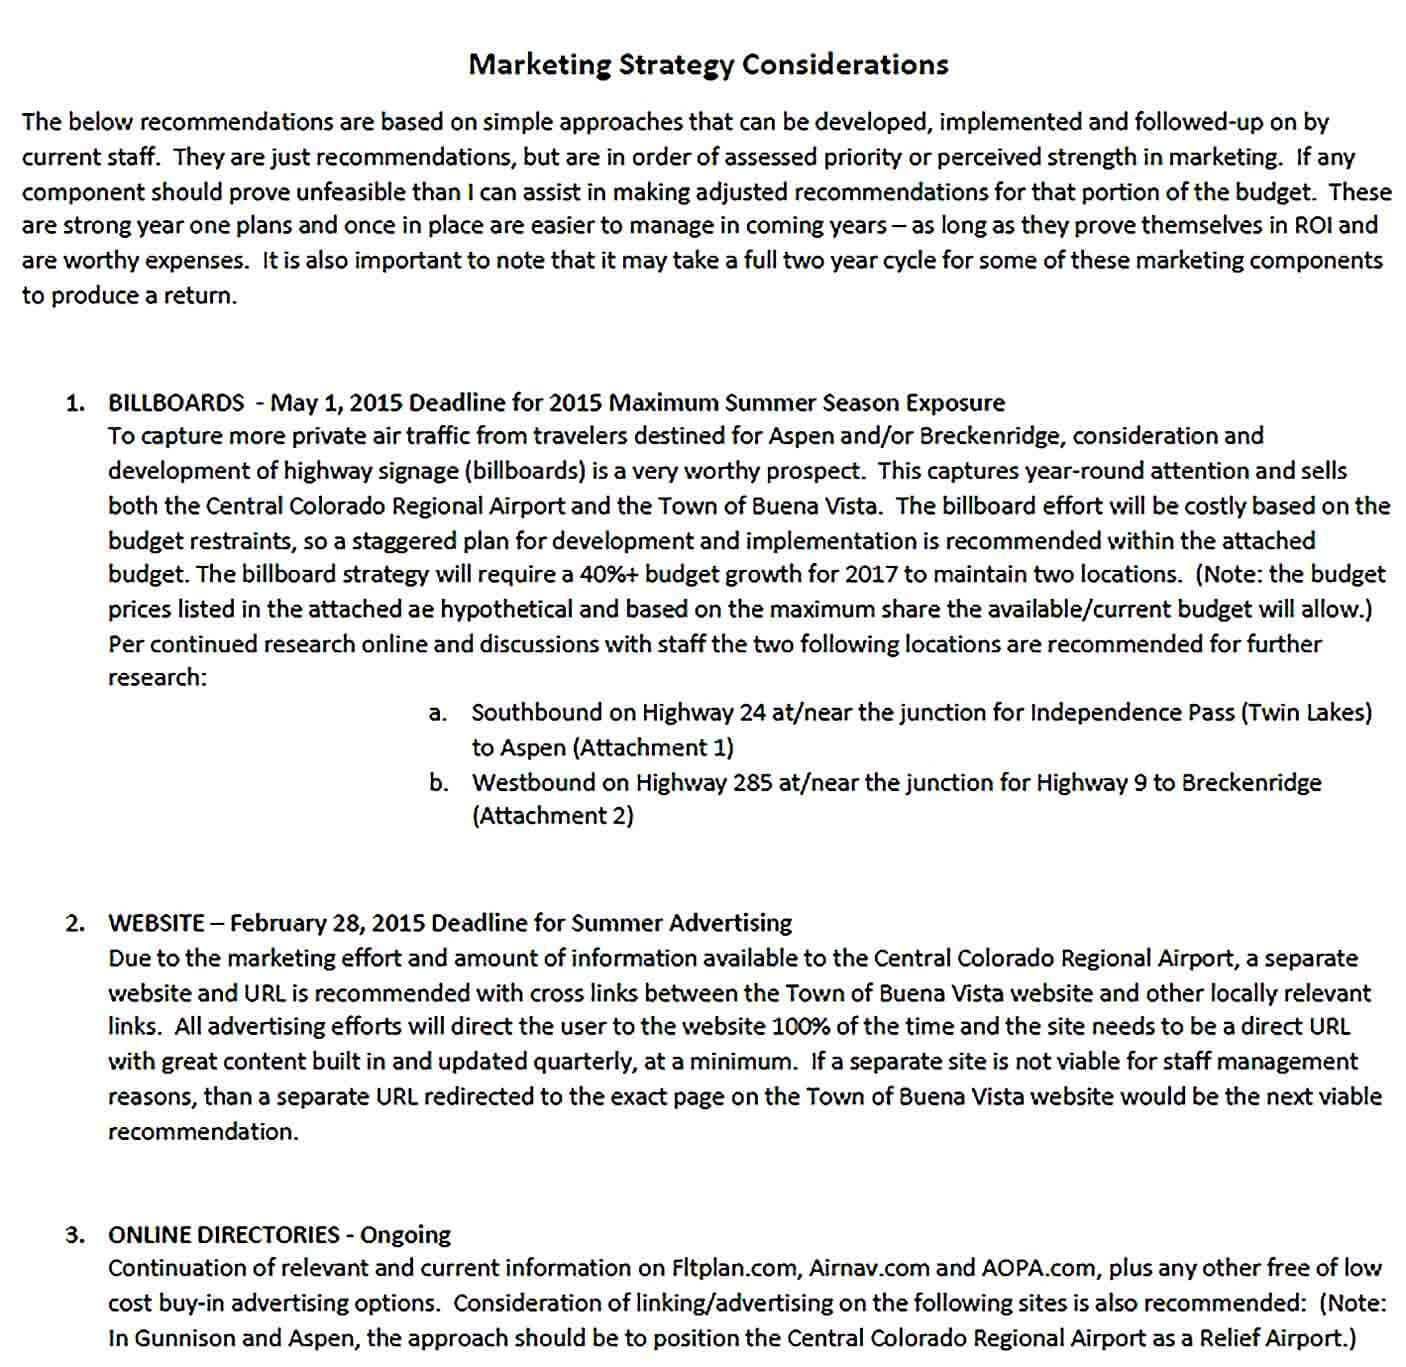 Sample Marketing Strategy Report Template